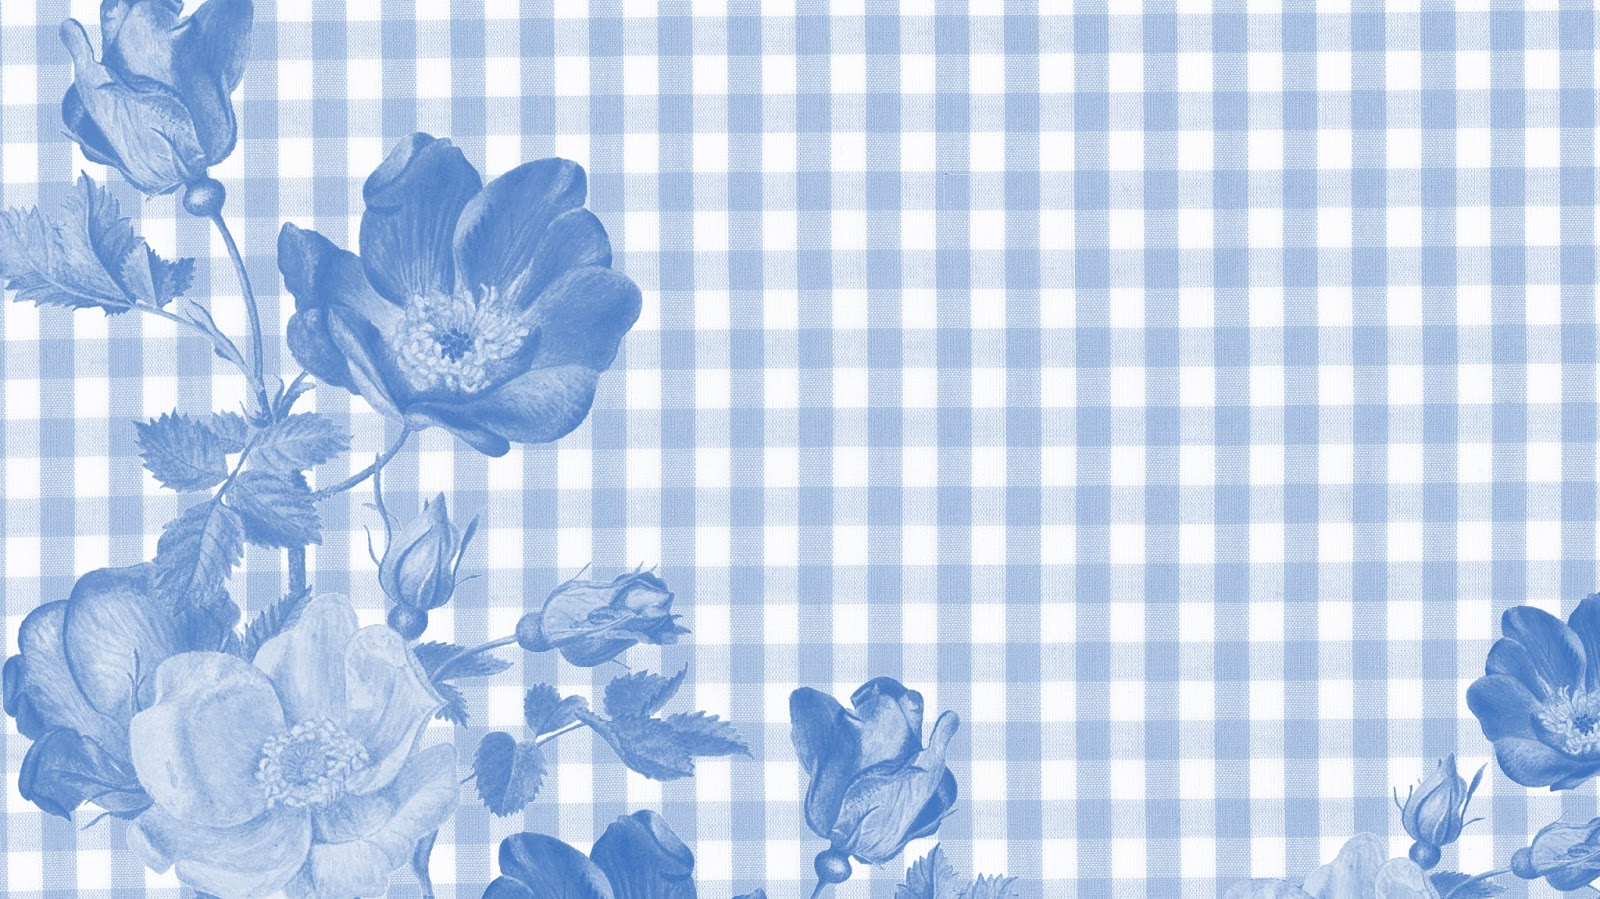 FLORAL GINGHAM - 9 PRETTY PASTEL DESKTOP AND PHONE WALLPAPERS FOR SPRING.